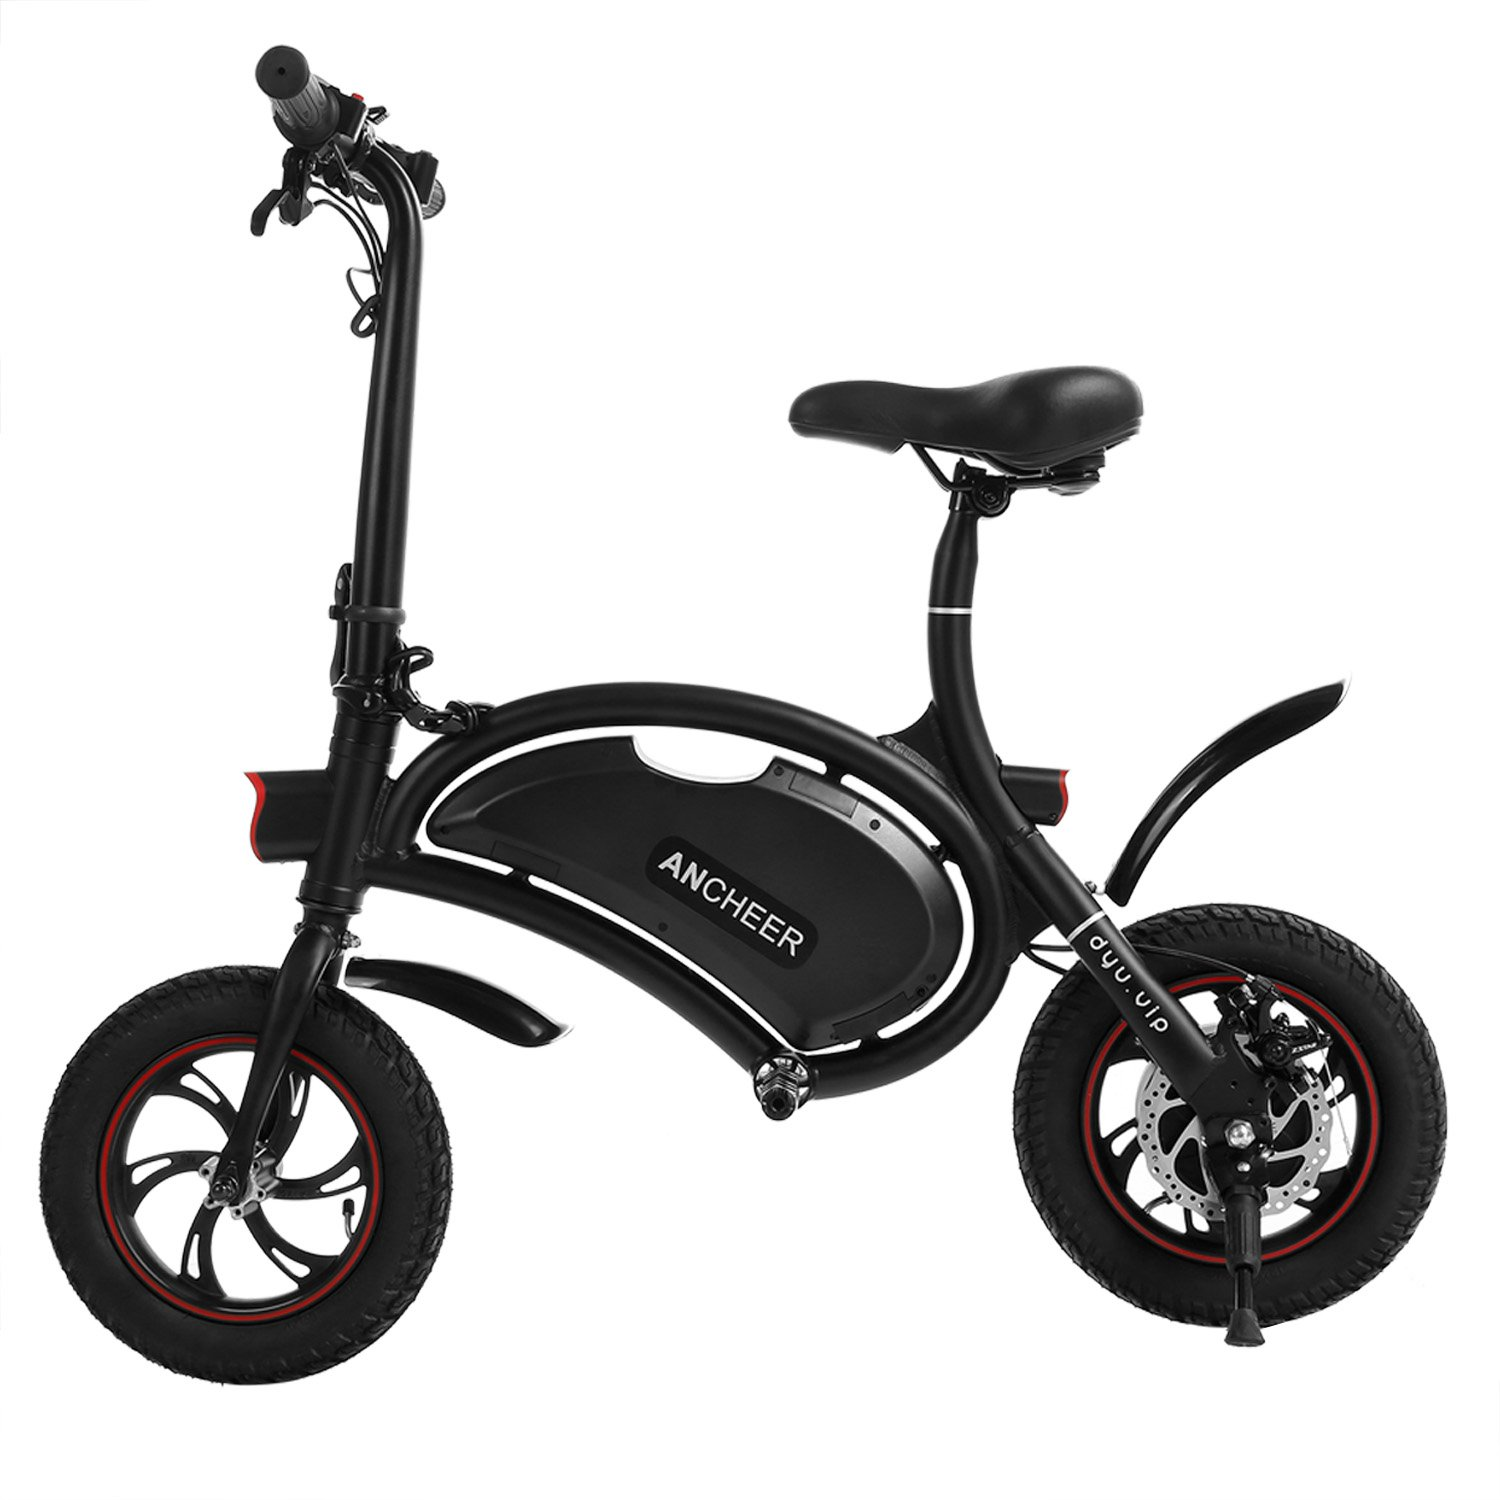 ANCHEER 2019 Folding E-Bike 350W Electric Bike, 12 Miles Range Scooter with Dual Disc Brake